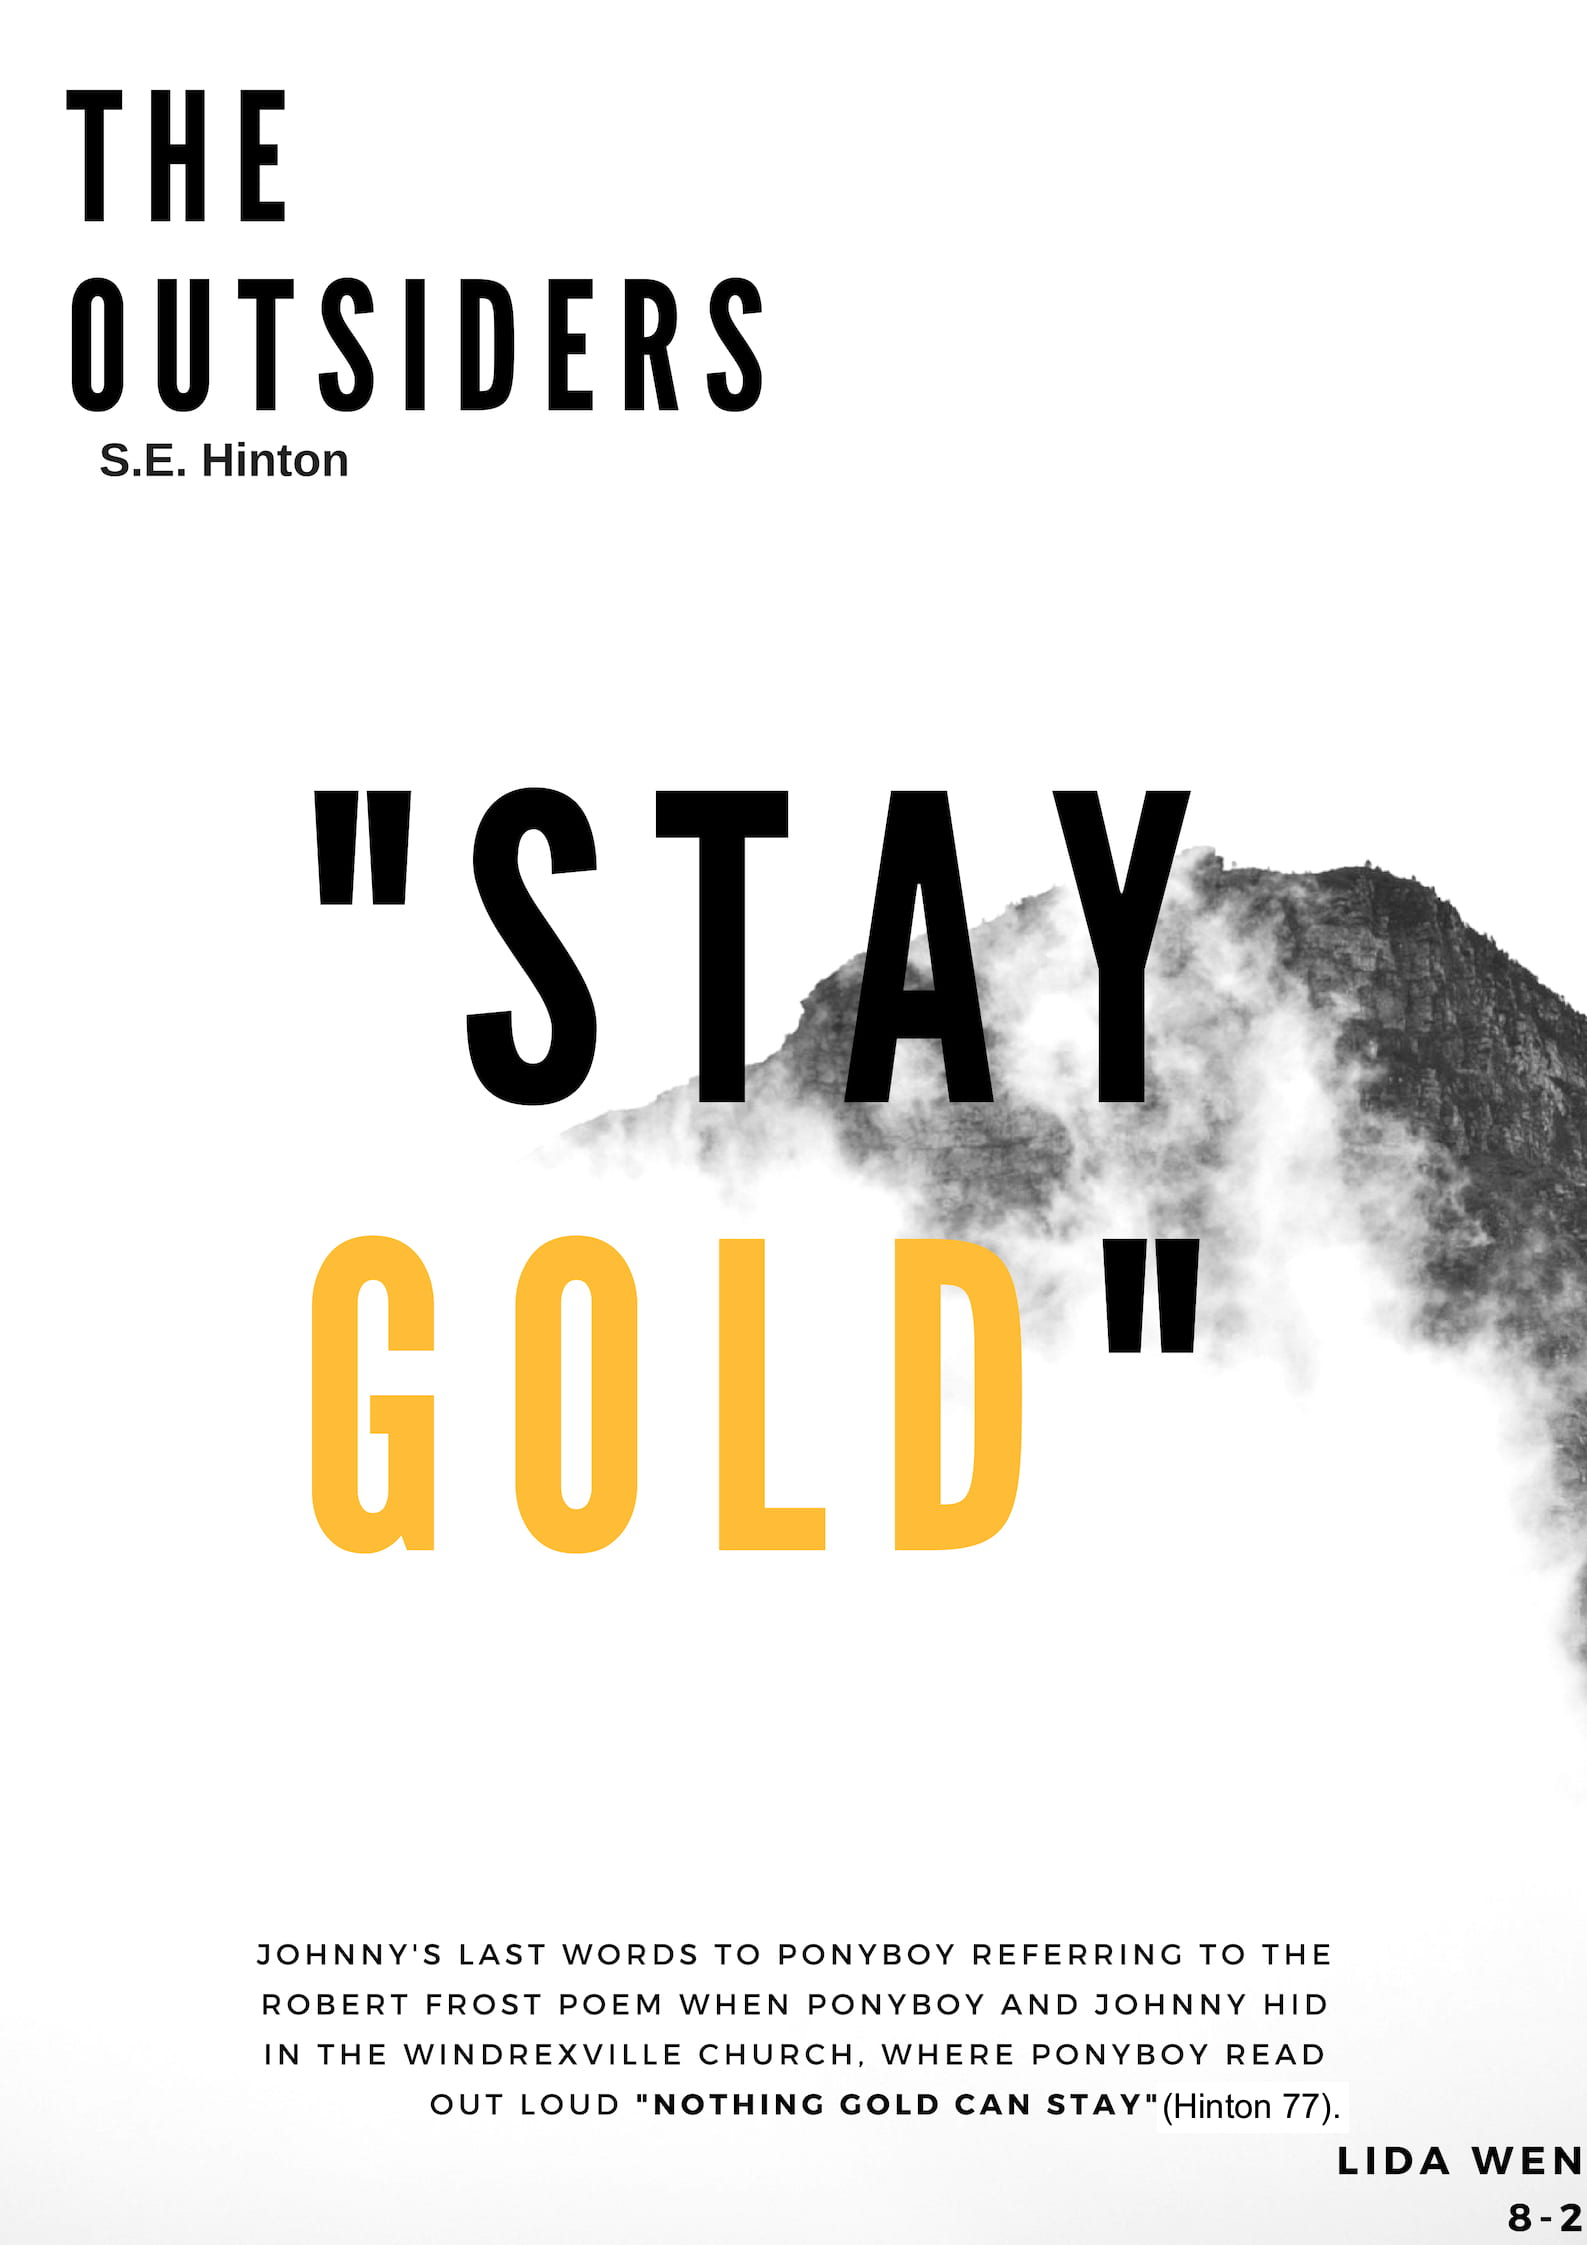 the outsiders robert frost poem meaning